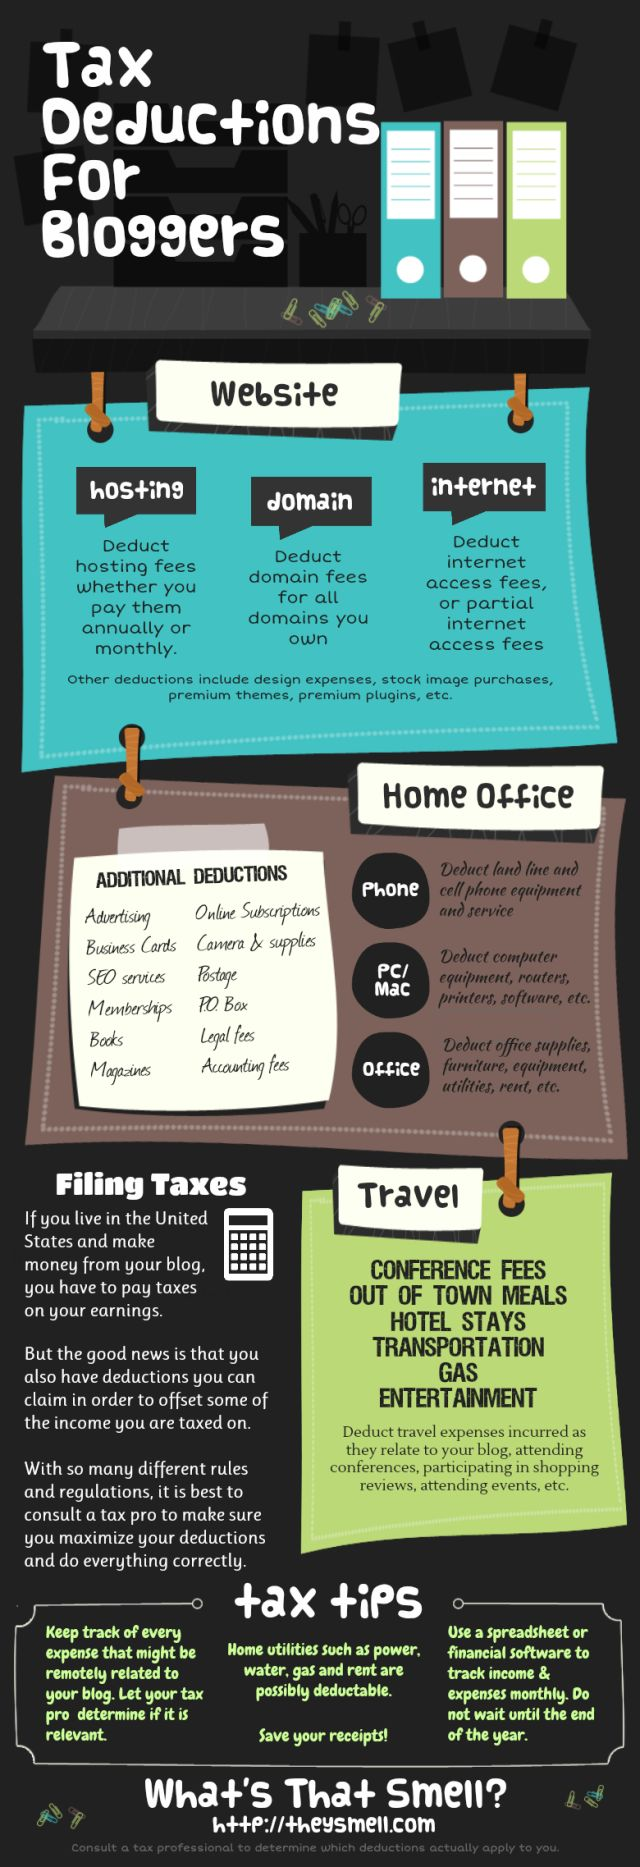 TAX DEDUCTIONS FOR BLOGGERS / Mar 20 '13